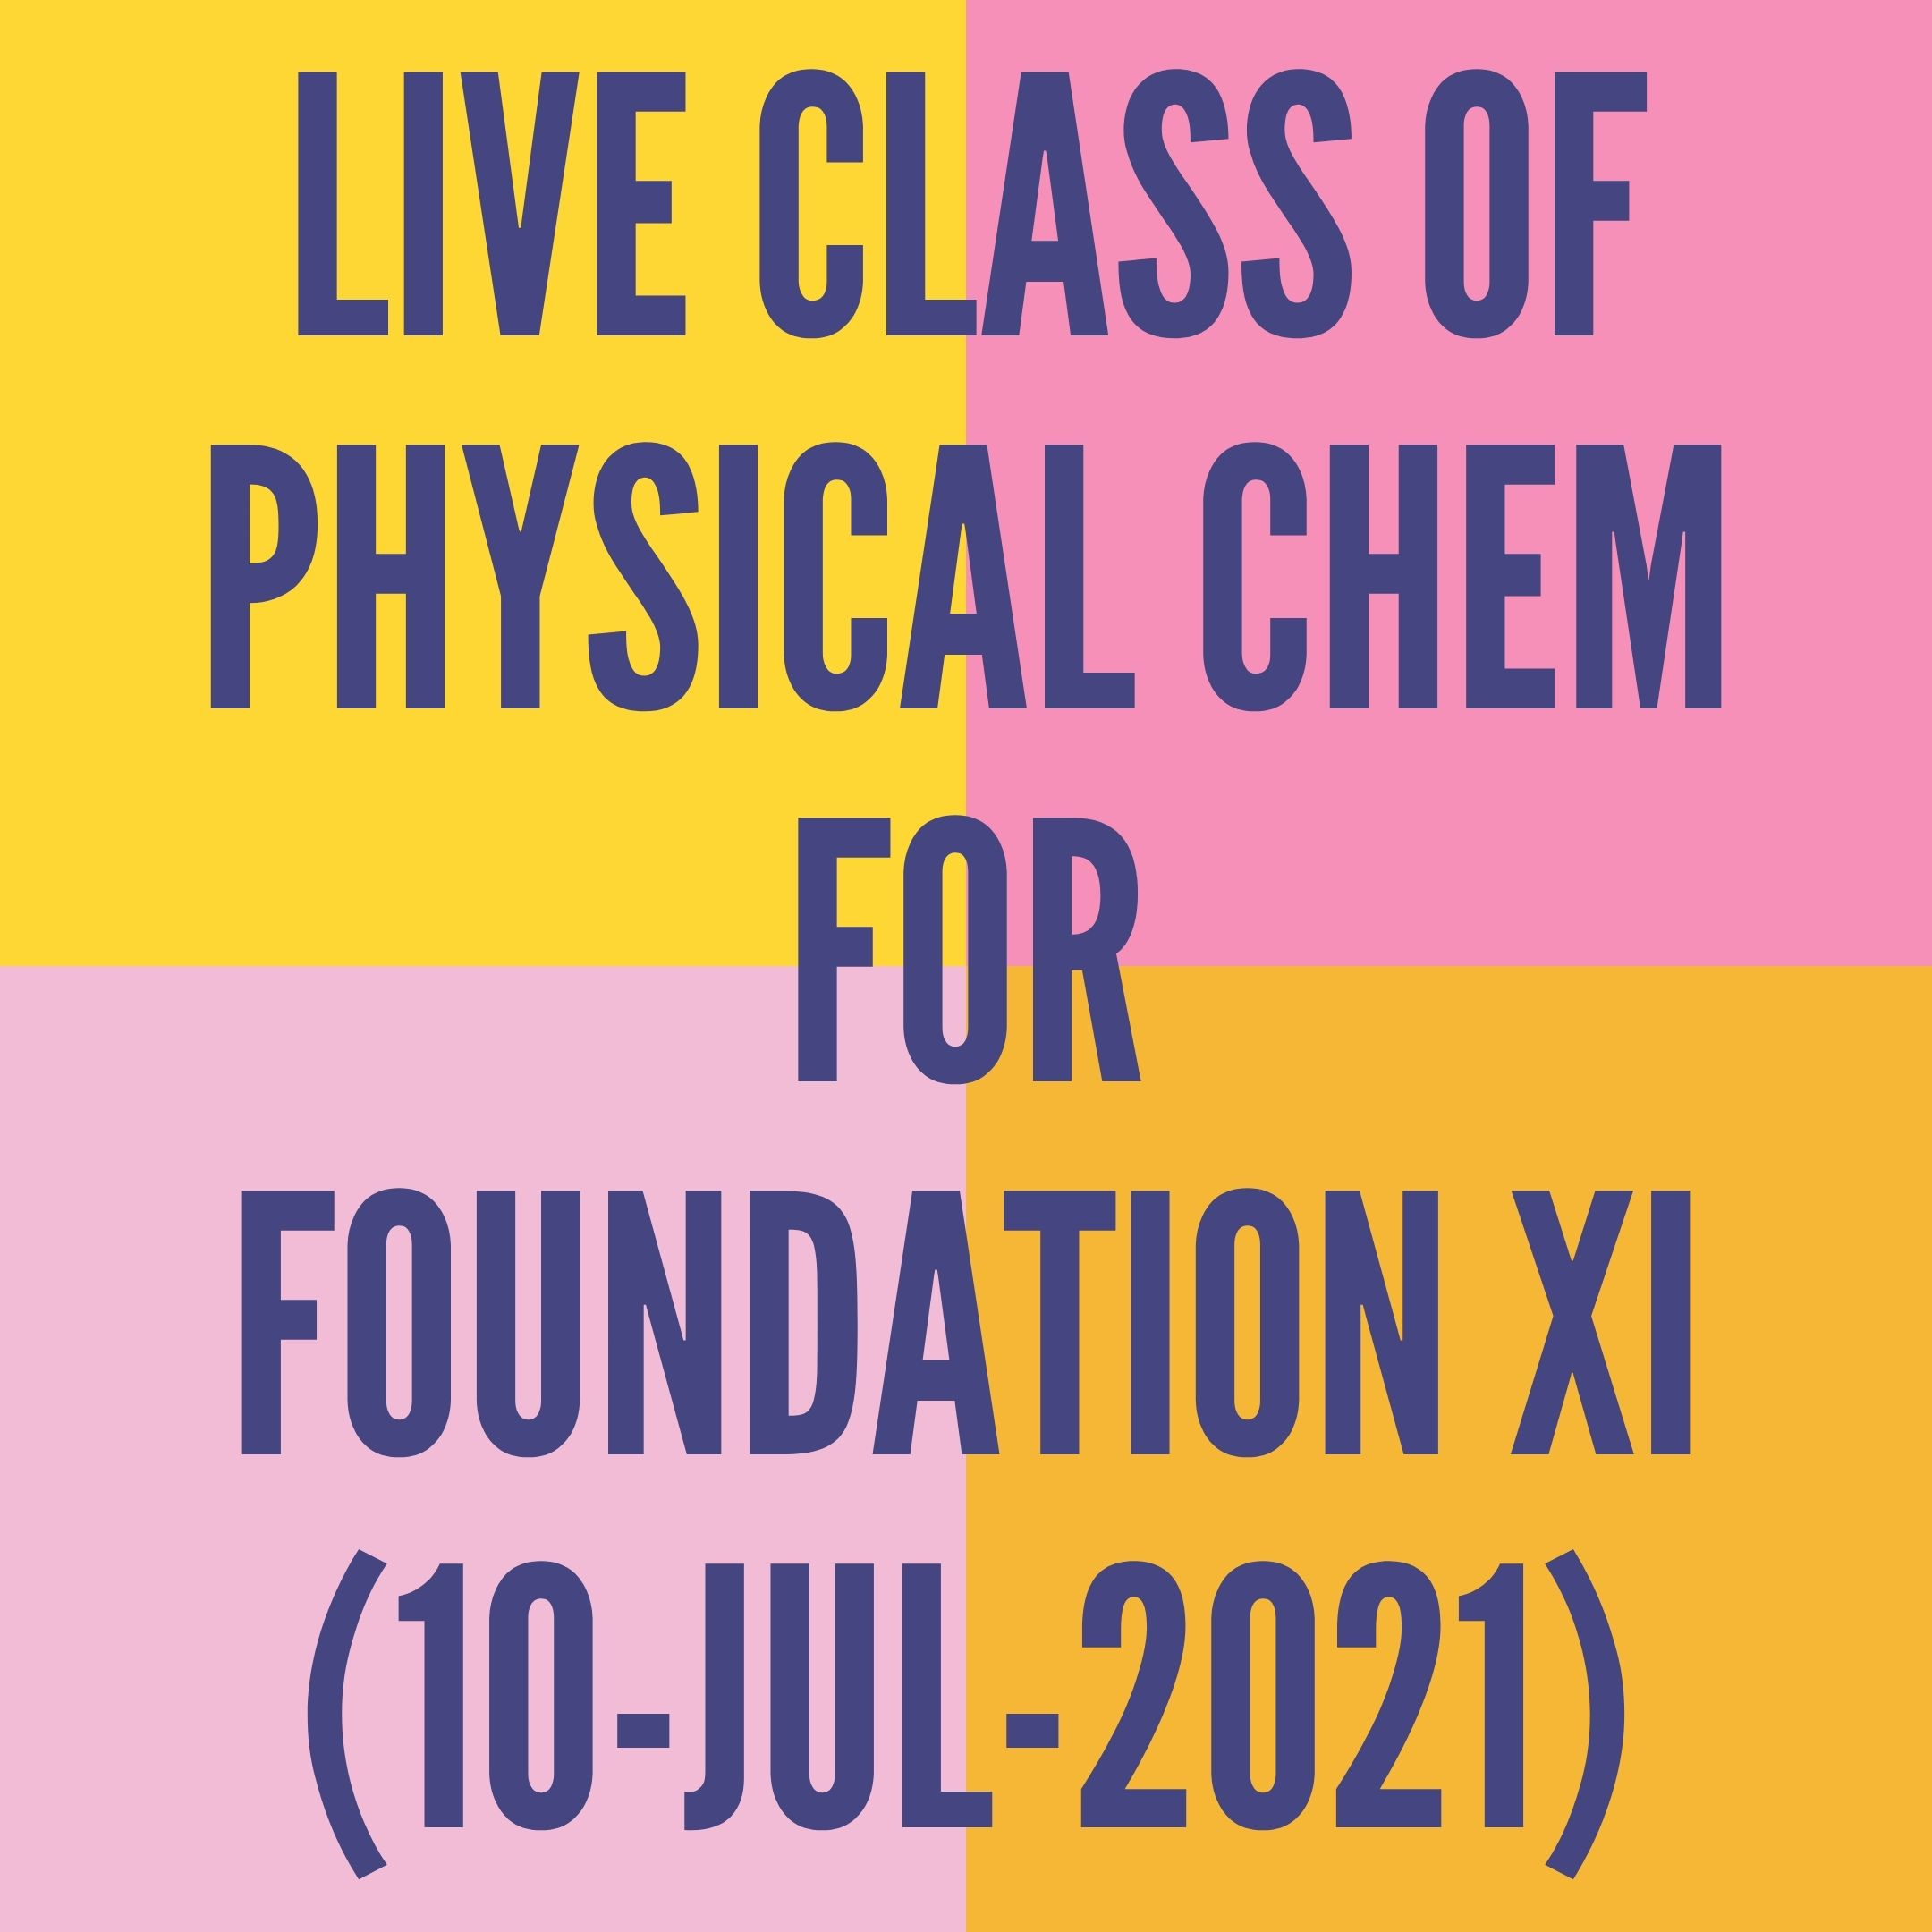 LIVE CLASS OF PHYSICAL CHEMISTRY FOR FOUNDATION XI (10-JUL-2021) CONCENTRATION OF SOLUTION